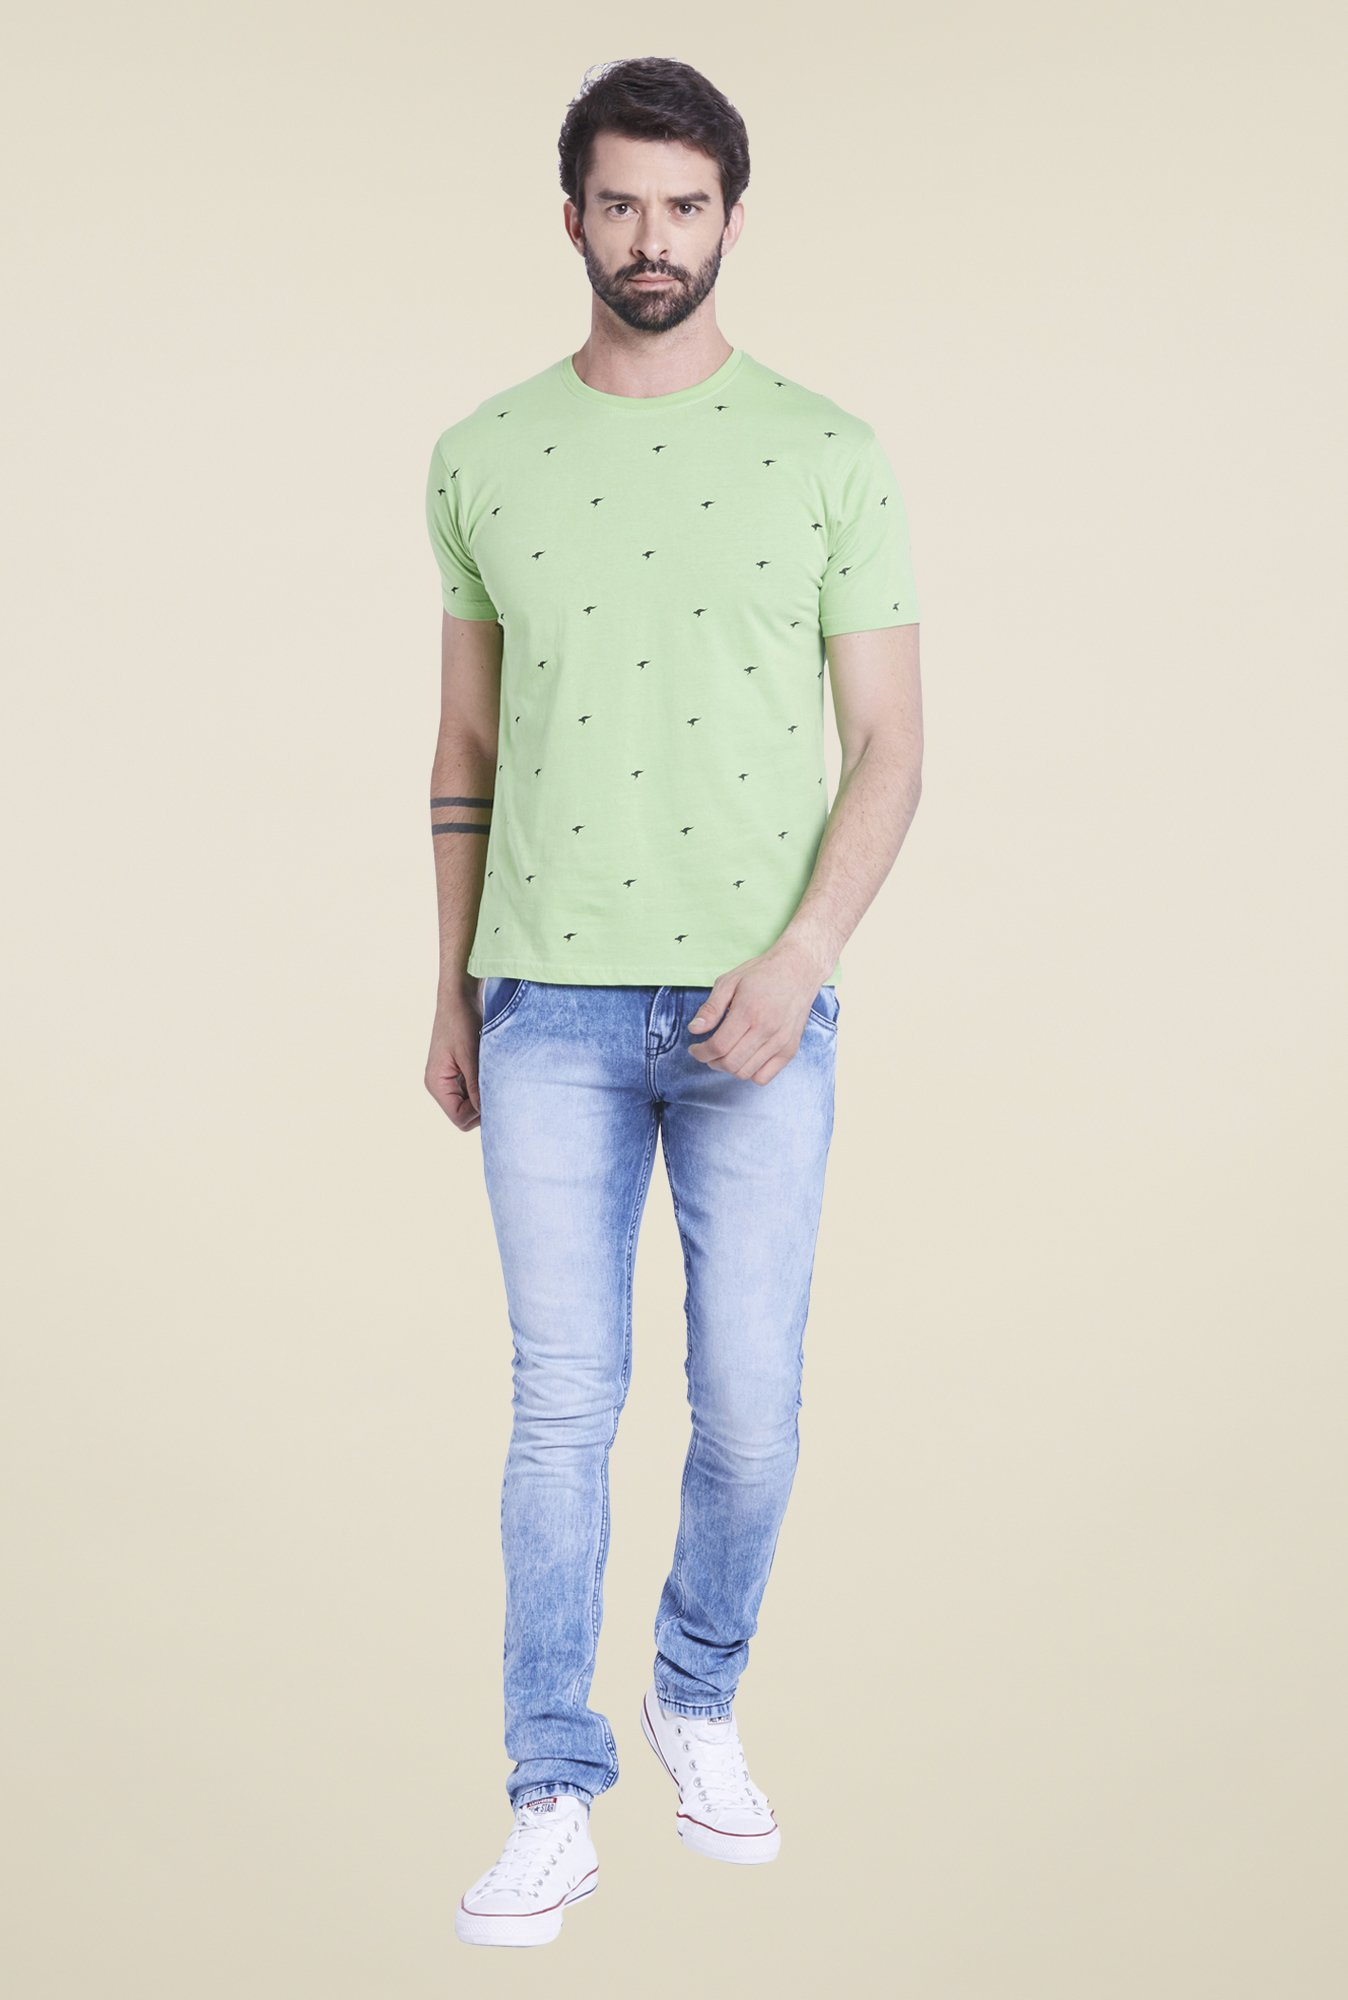 Globus Green Printed T Shirt